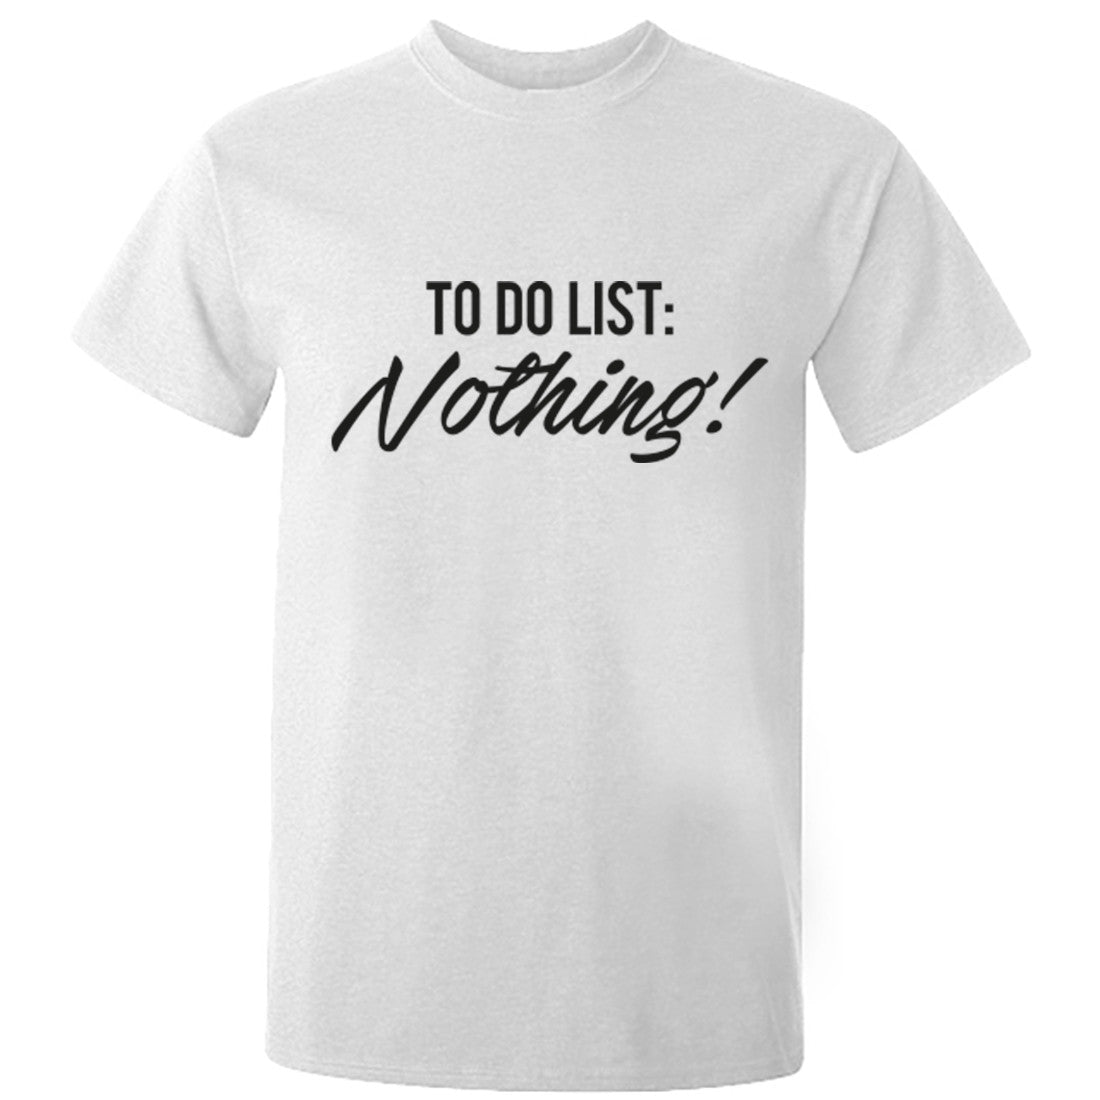 To Do List: Nothing Unisex Fit T-Shirt K0666 - Illustrated Identity Ltd.